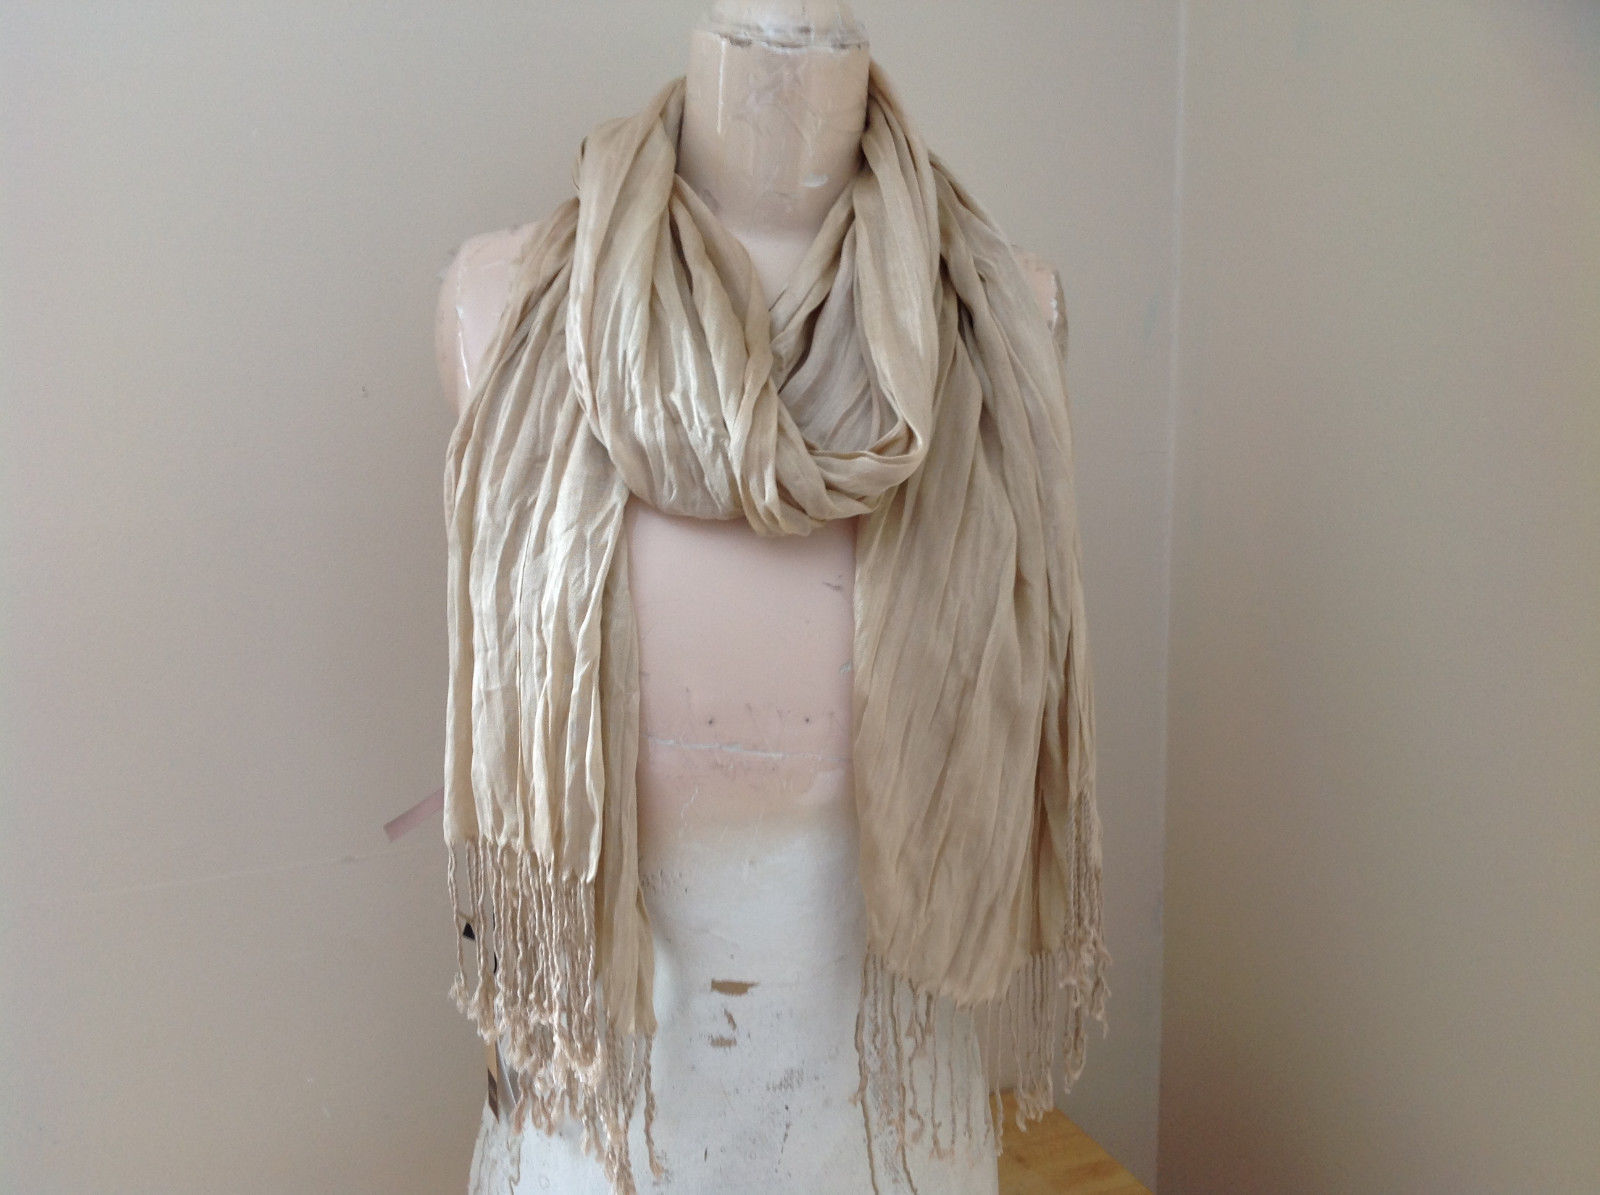 Silk Cotton Tan Scrunch Style Scarf with Tassels by Look Tag Attached